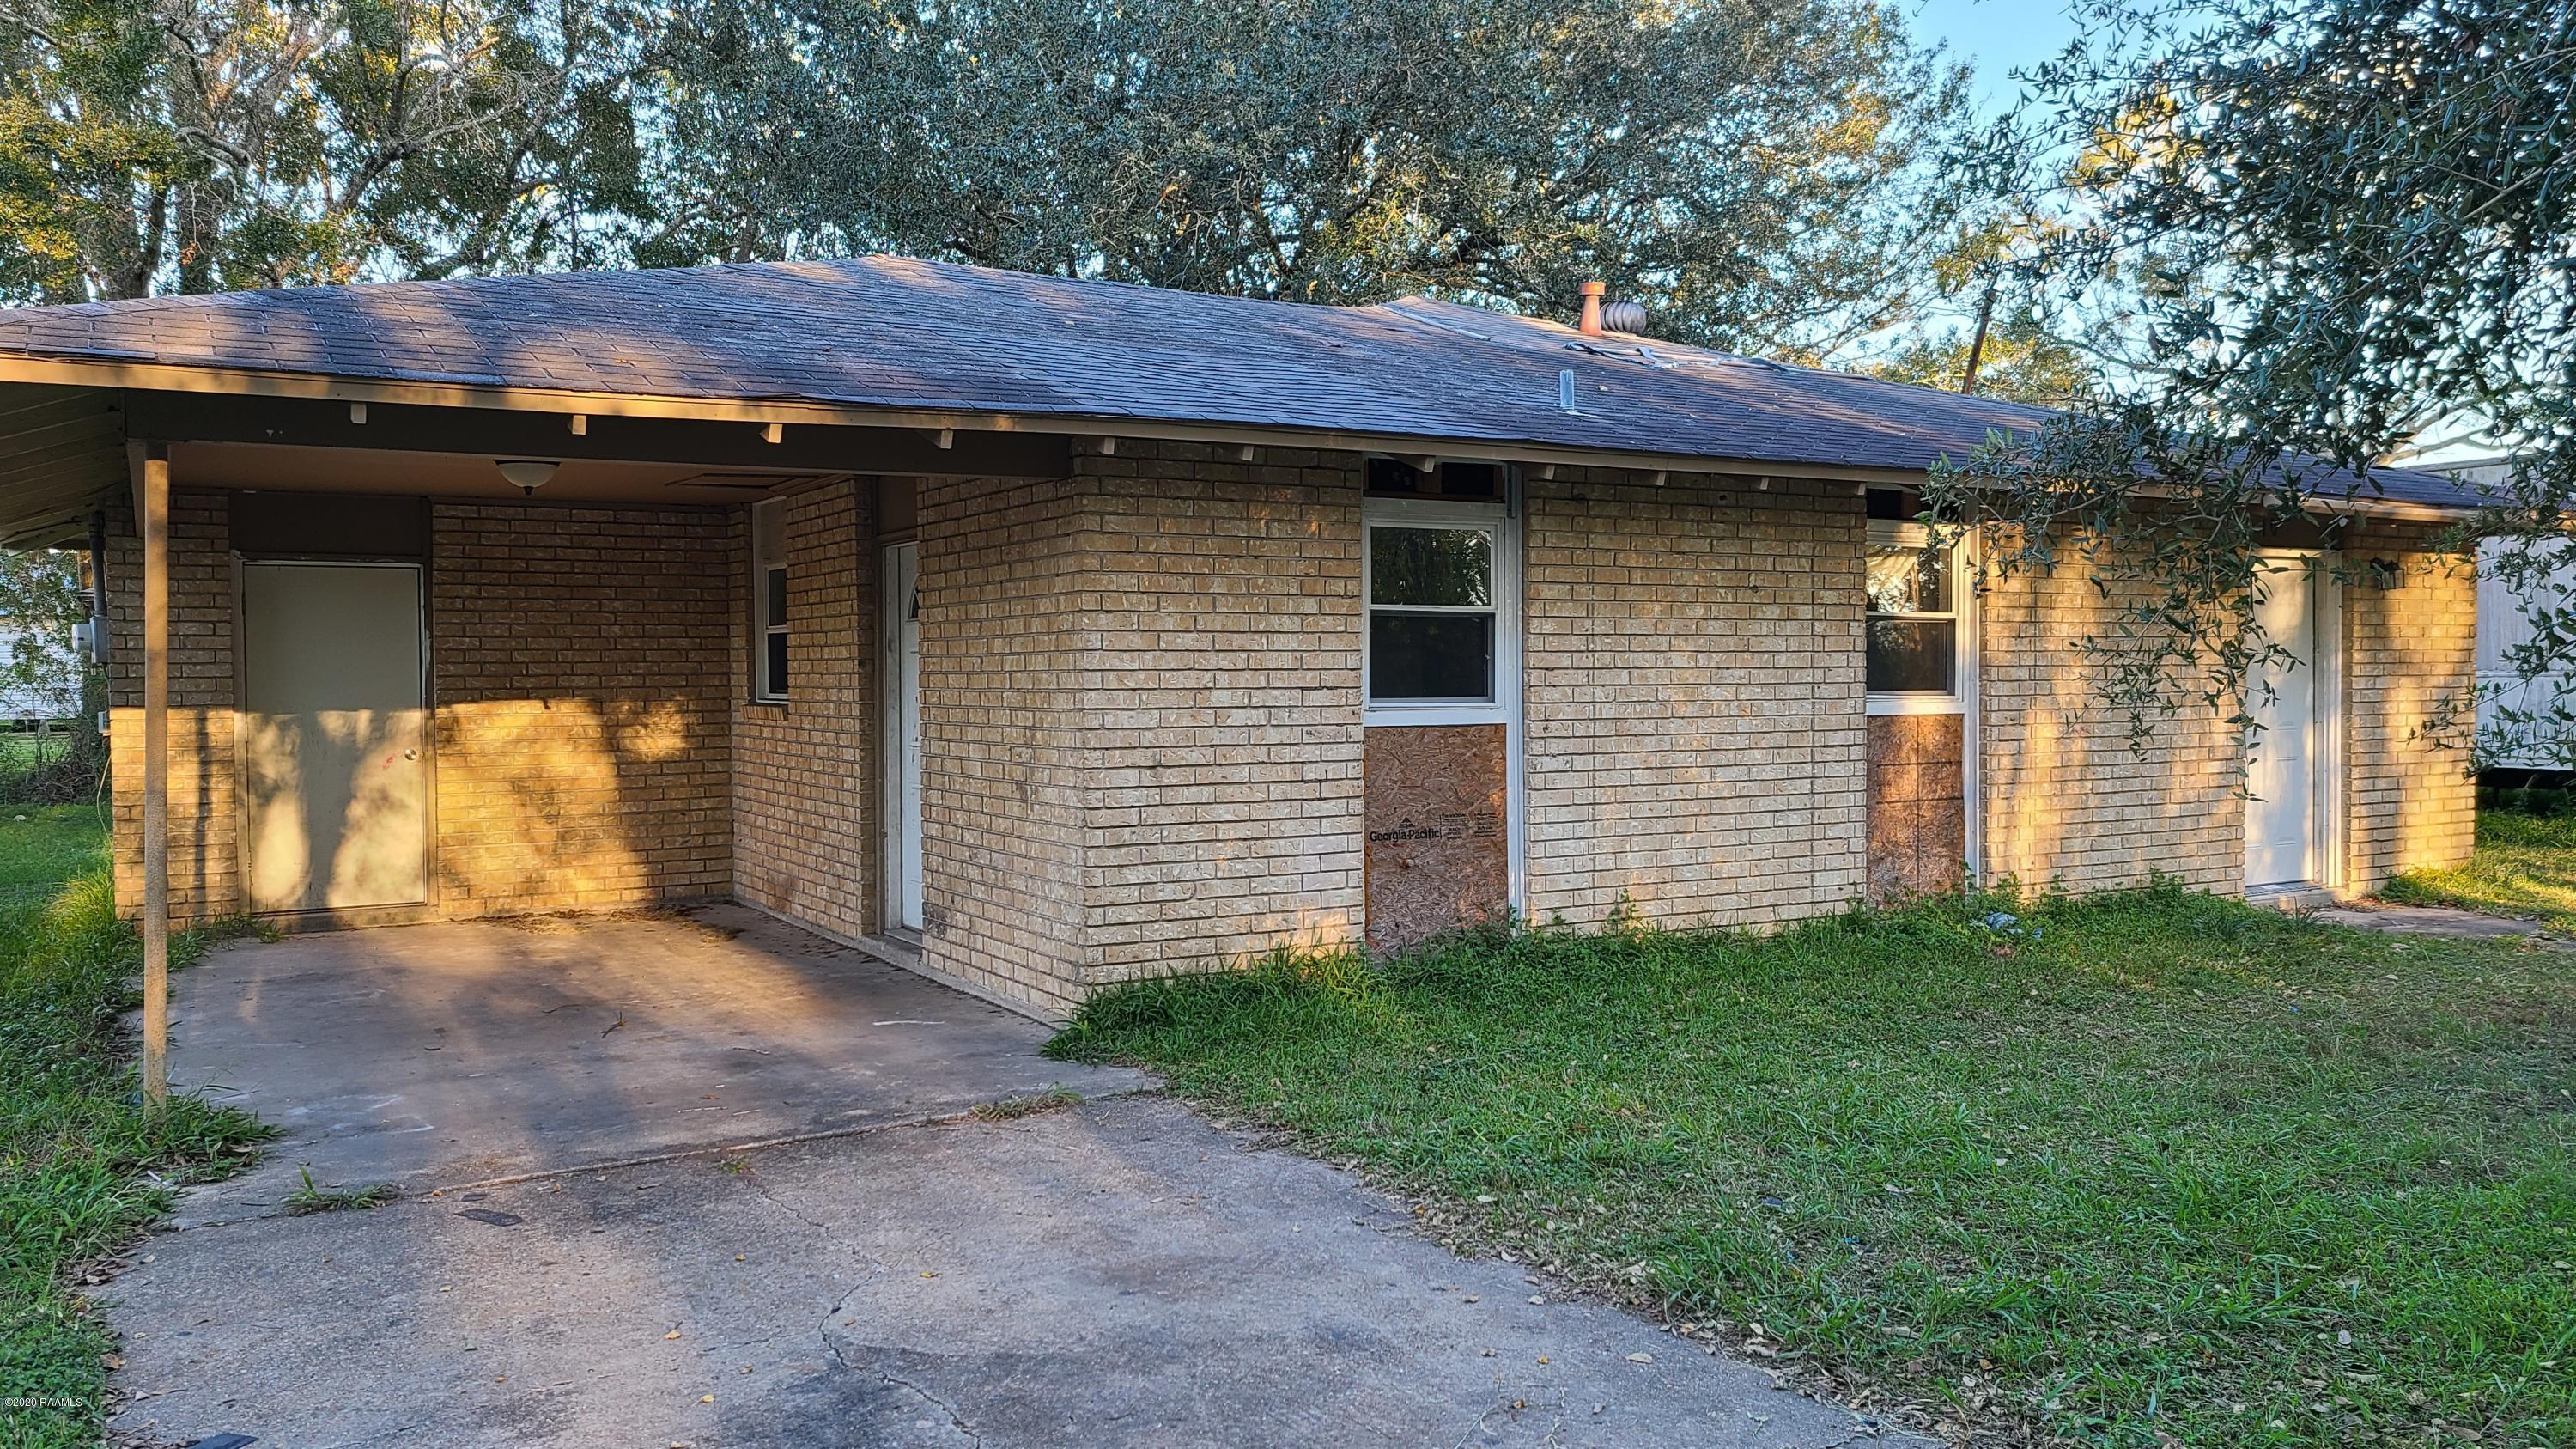 109 Eighth Street, Baldwin, LA 70514 Photo #1